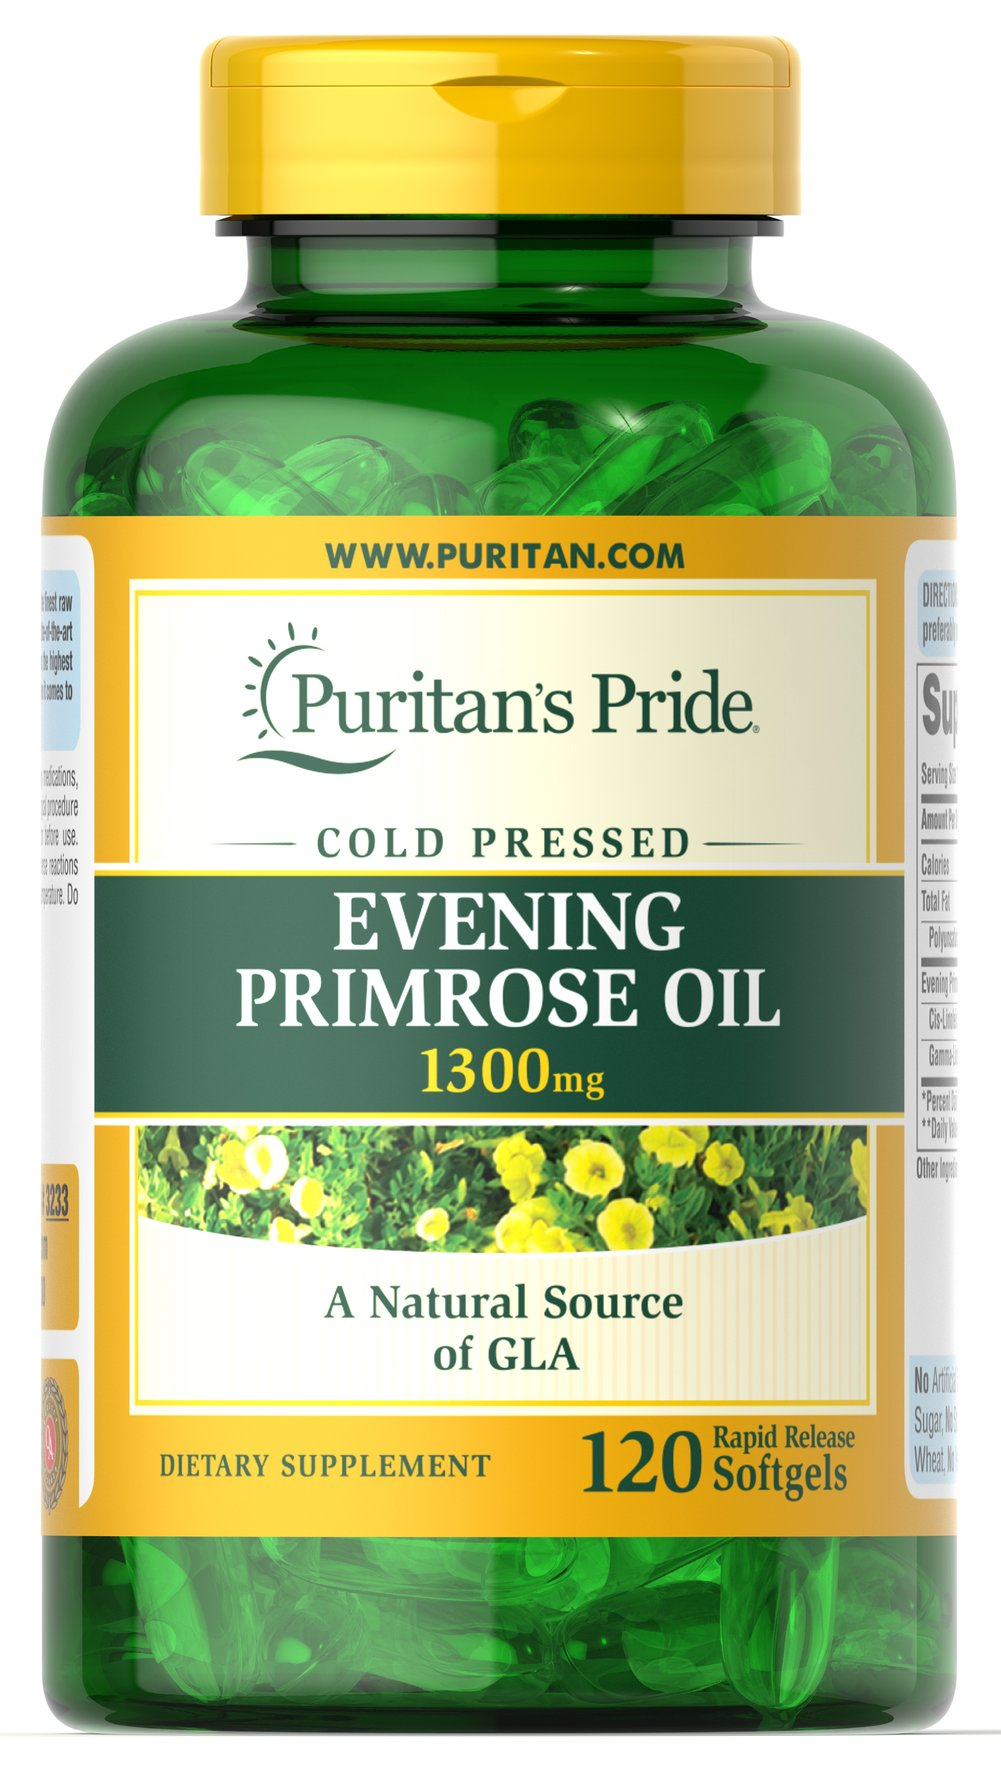 Evening Primrose Oil 1300 mg with GLA  120 Softgels 1300 mg $31.99